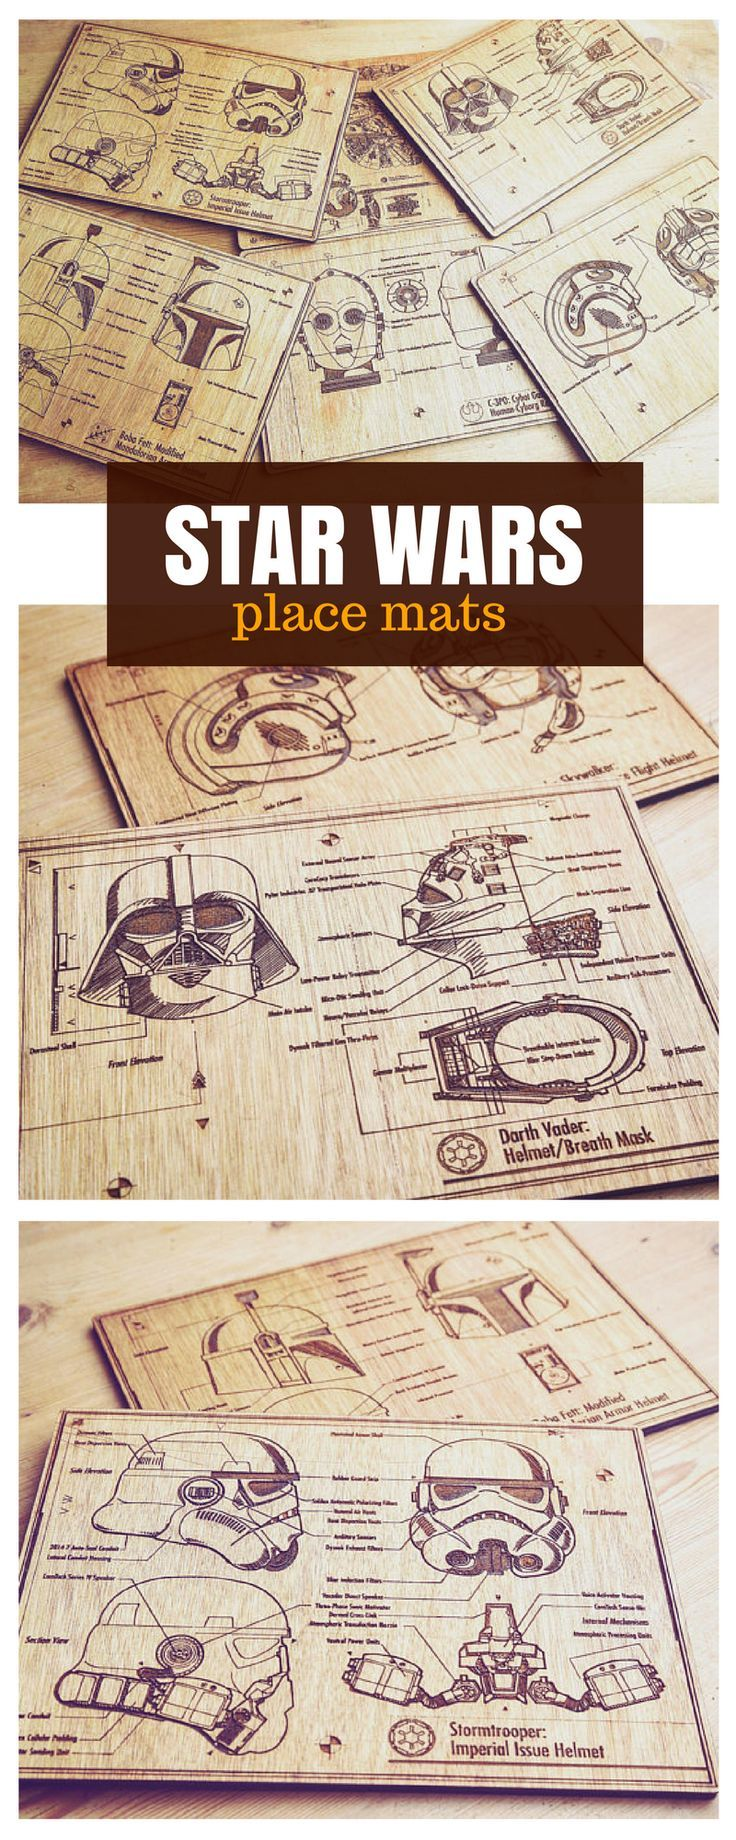 Star Wars wooden blueprint place mats to protect your table from spills, spillage and scratch. #starwars #table #kitchen #homedecor #placemats #commissionlink